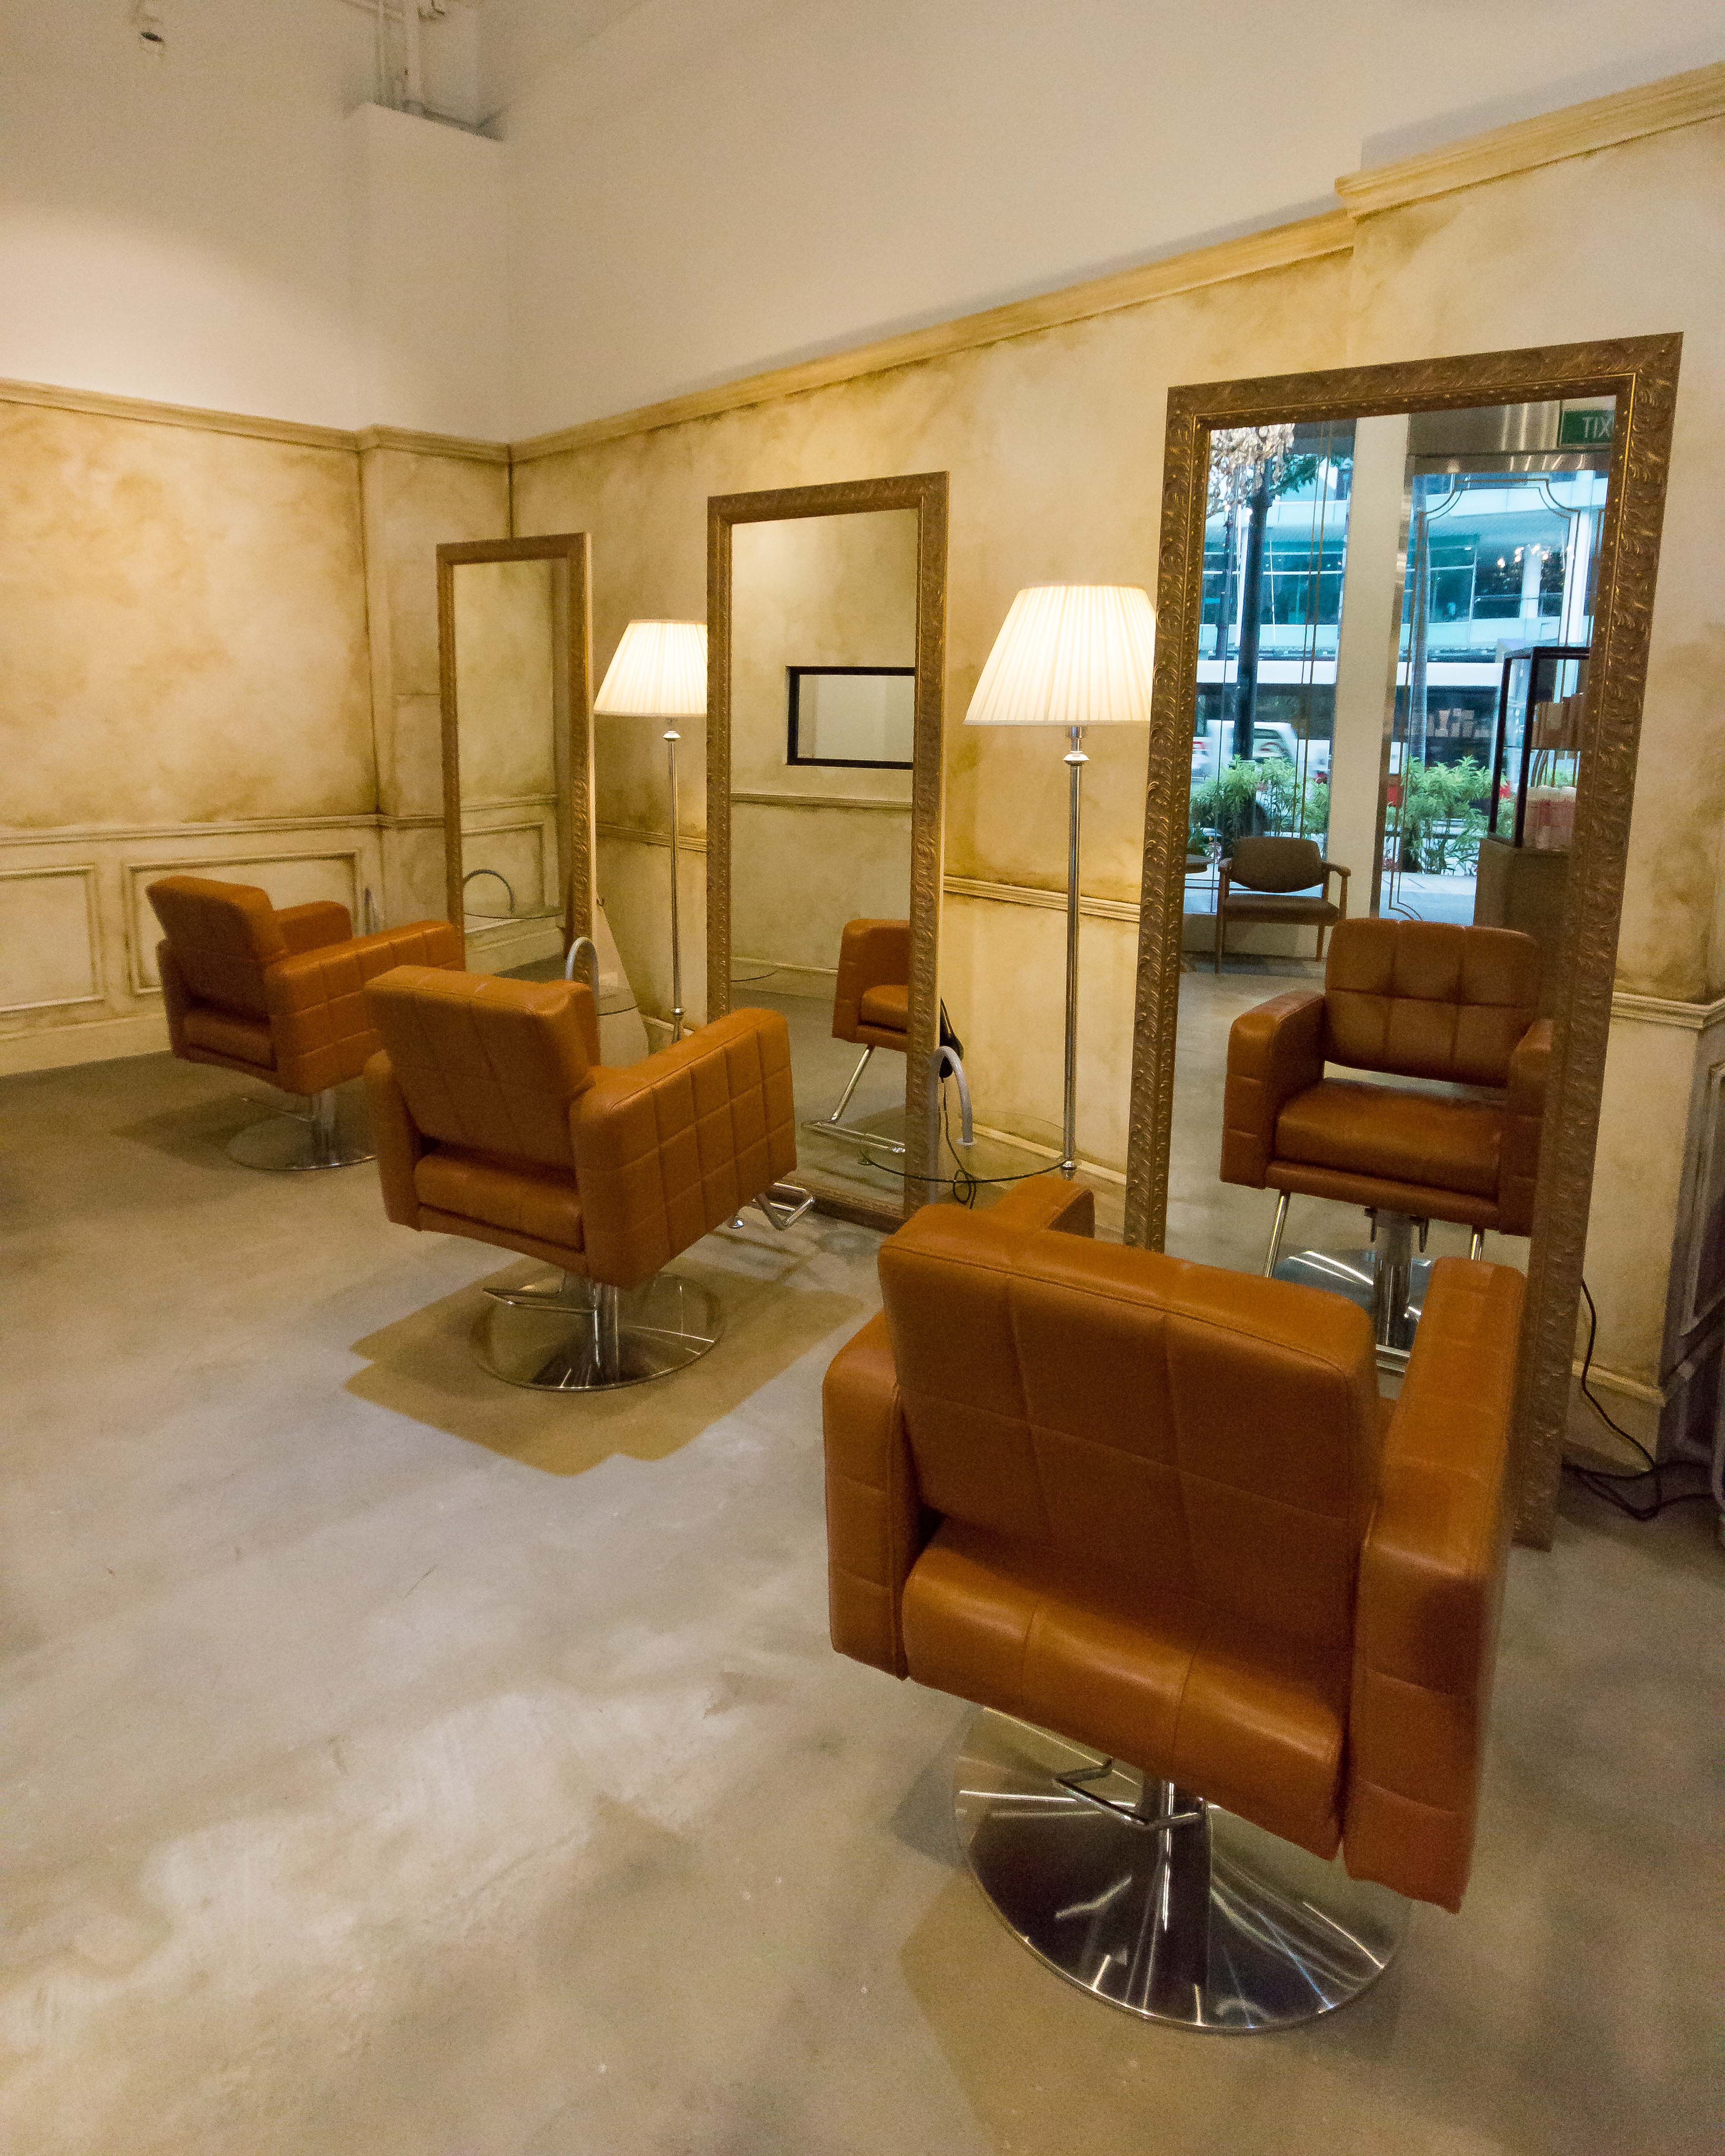 Affordable Hair Services at Bump by Aventa